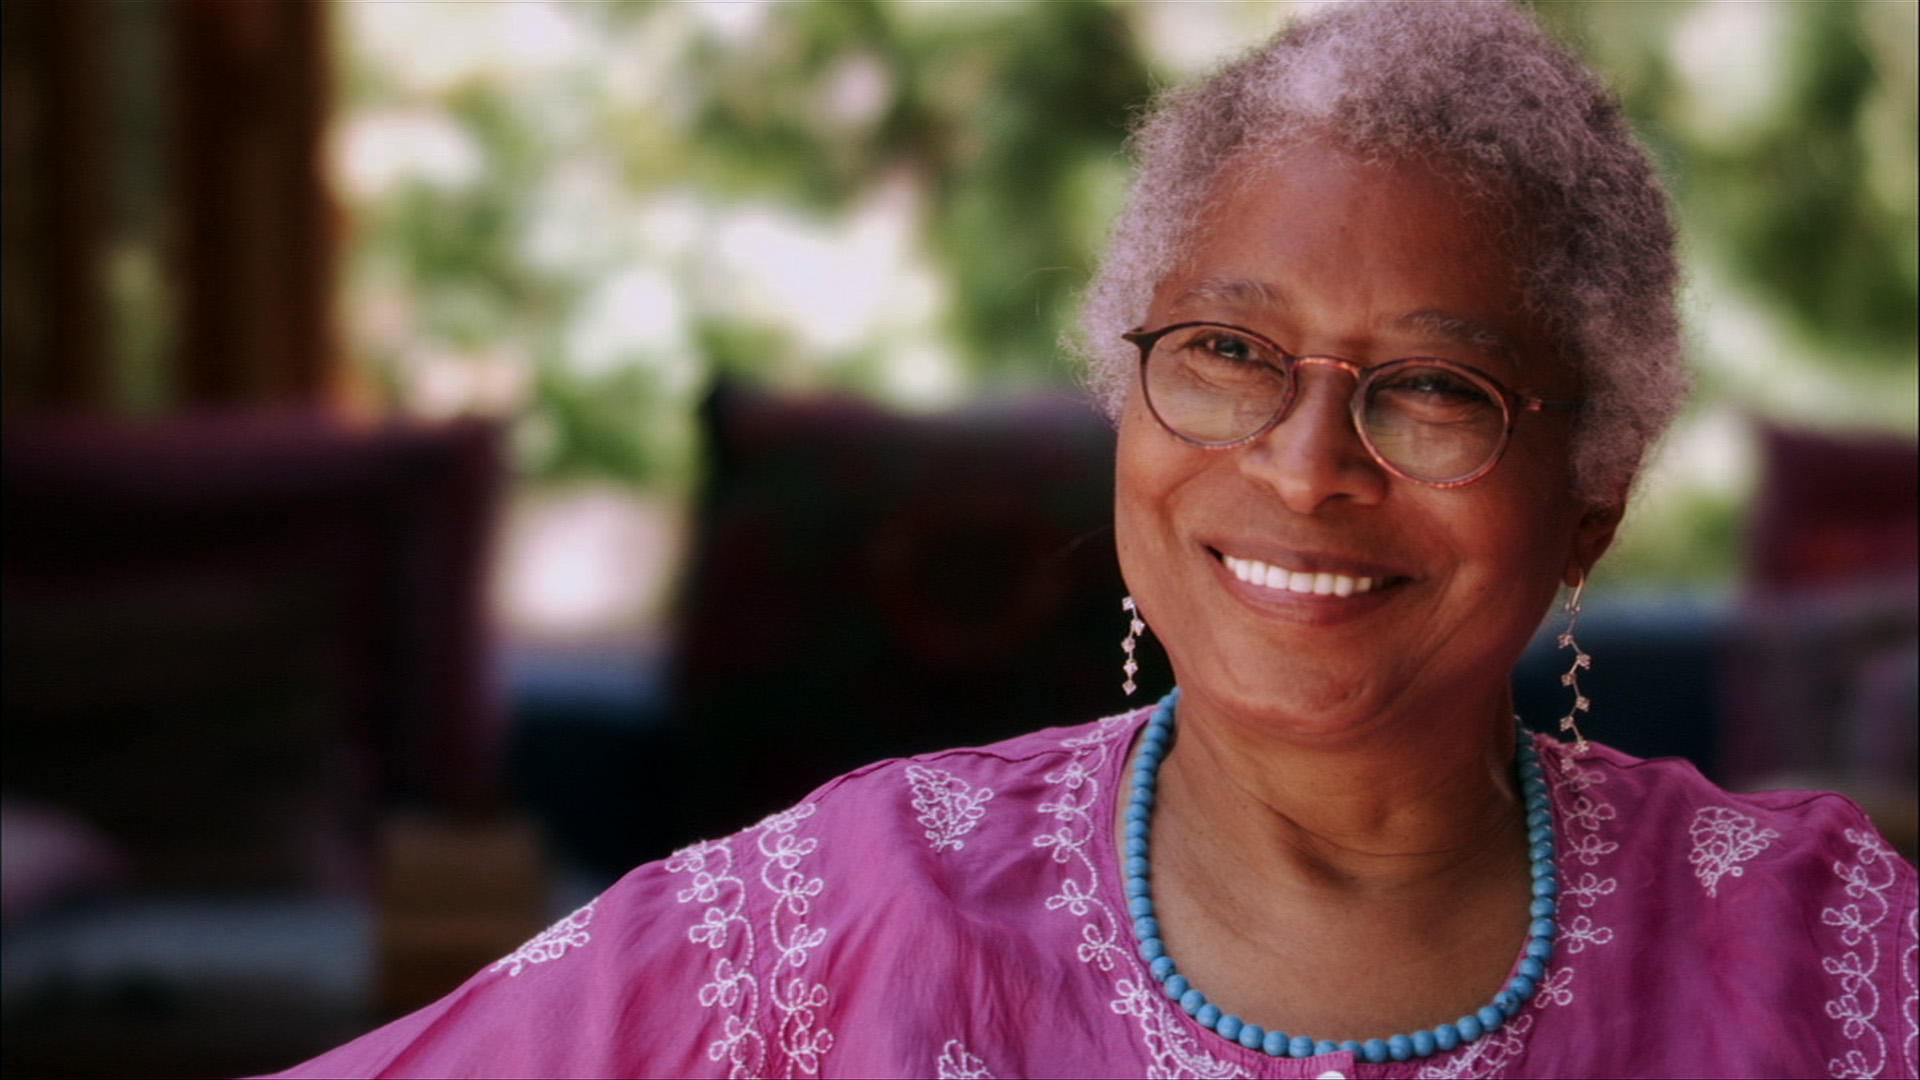 the life of alice walker Alice walker is known world-wide for her literary protrayals of the african american woman's life - alice walker life essay introduction she was born in 1944 on february 9 in eatonton, ga to willie lee walker and minnie lou tallulah grant.